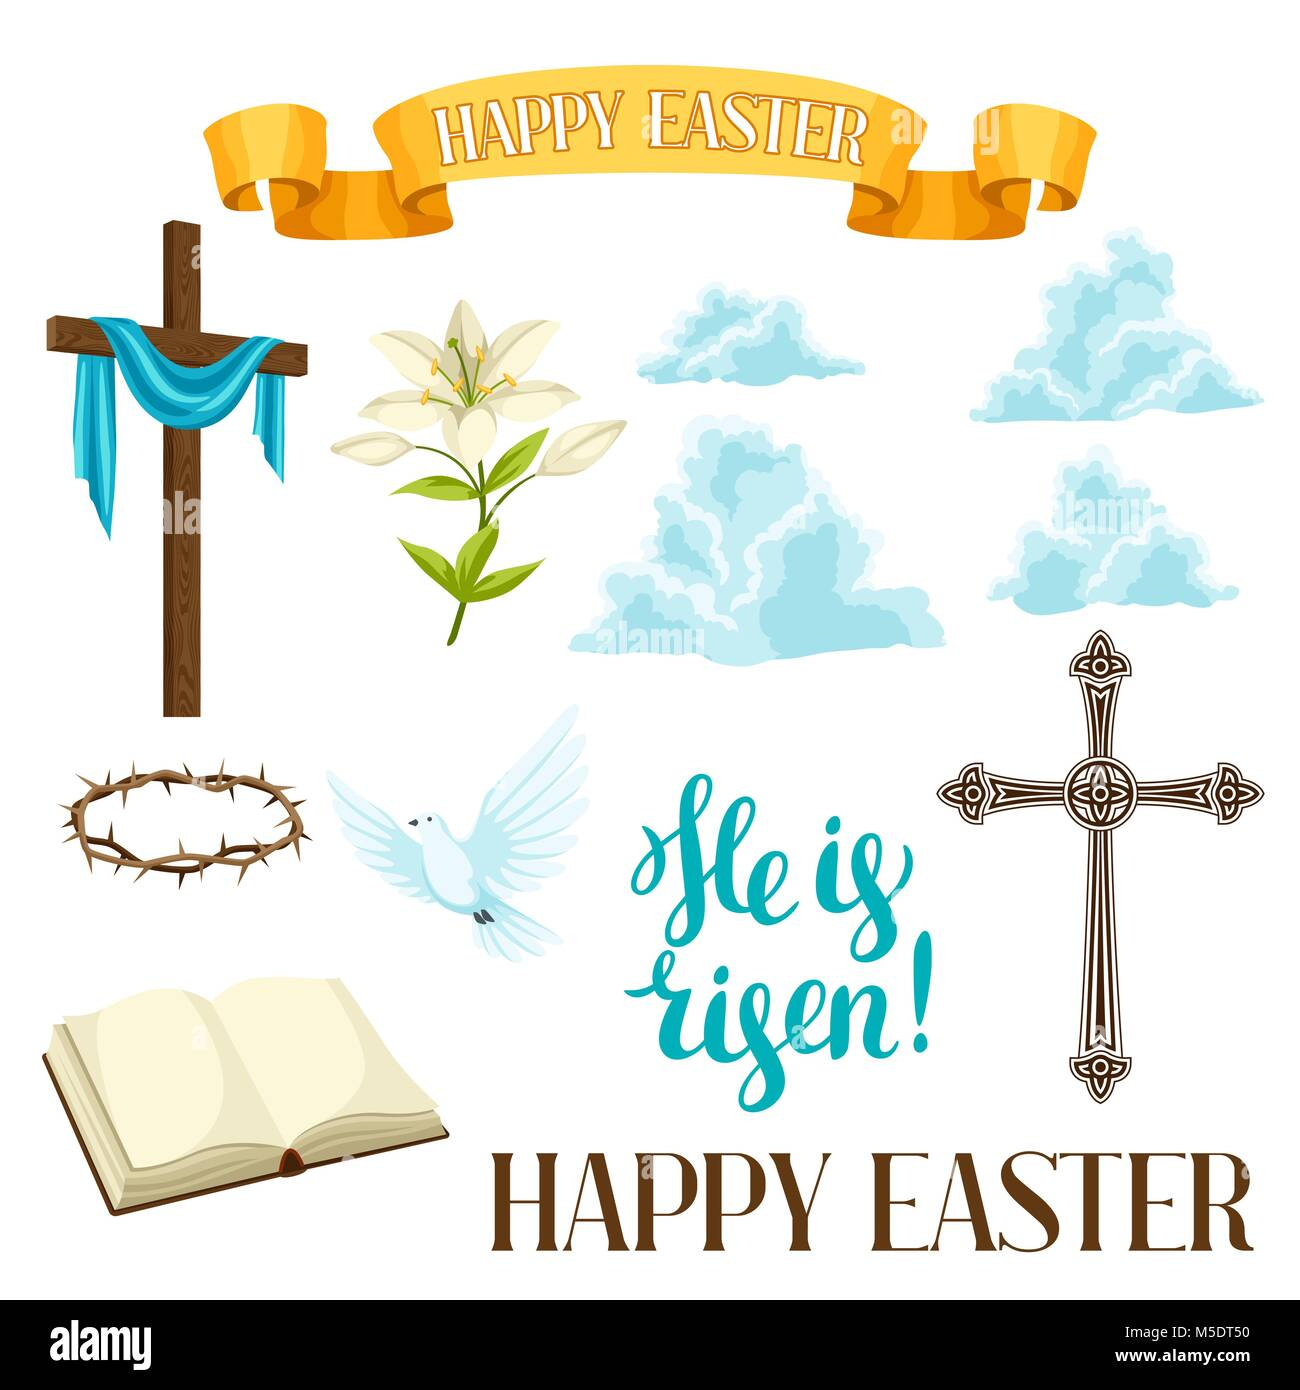 Religion symbols cut out stock images pictures alamy happy easter set of decorative objects religious symbols of faith stock image biocorpaavc Gallery